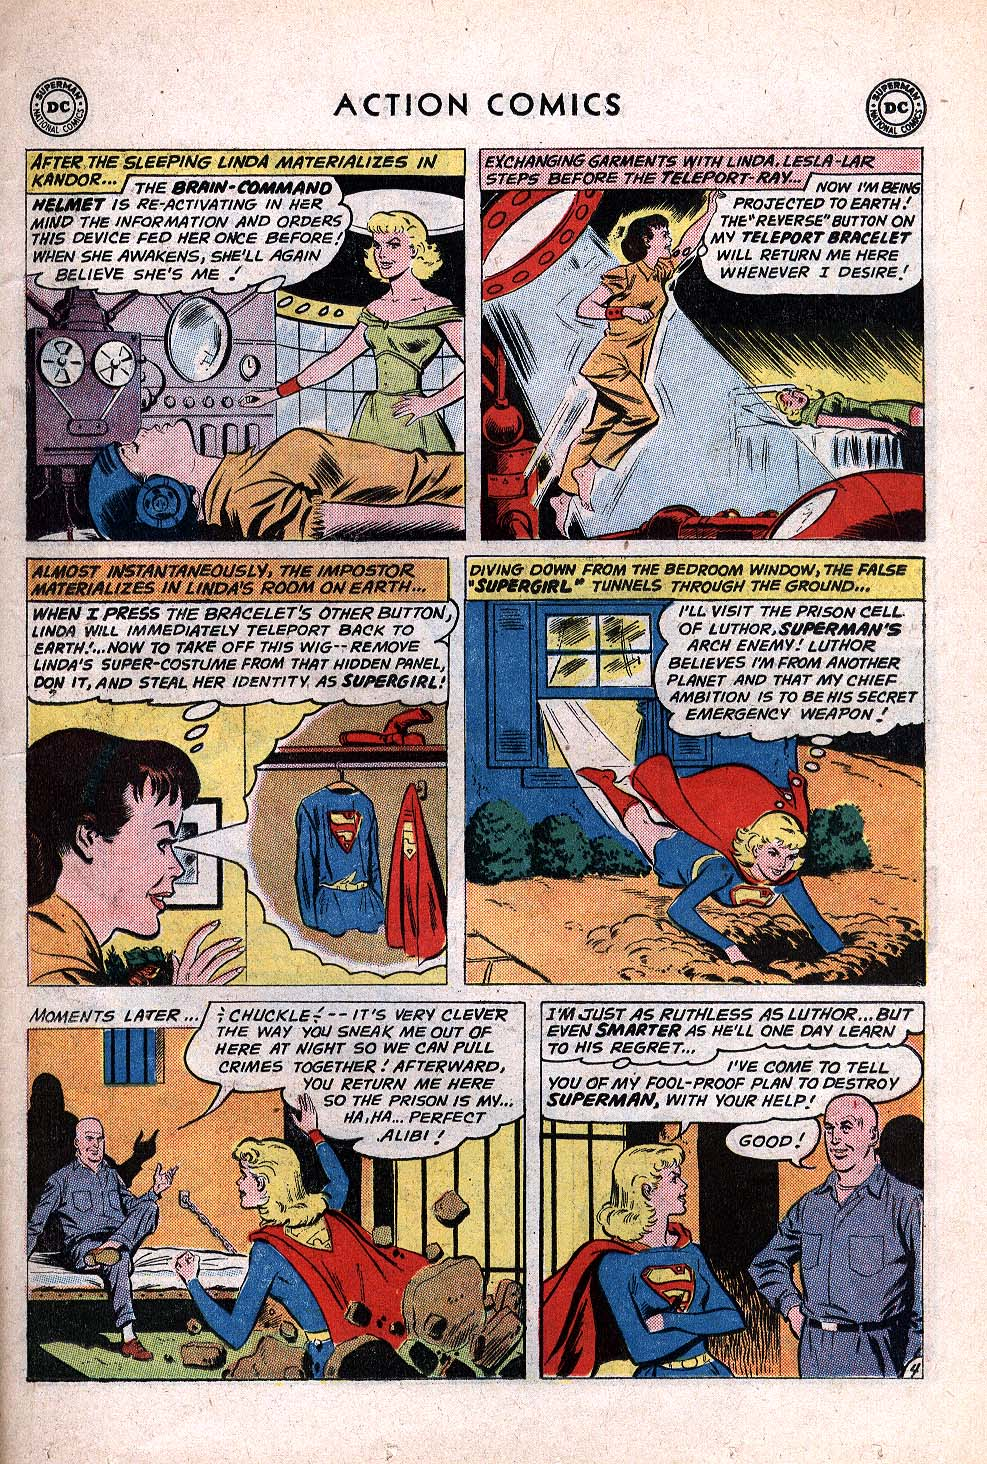 Action Comics (1938) 280 Page 22